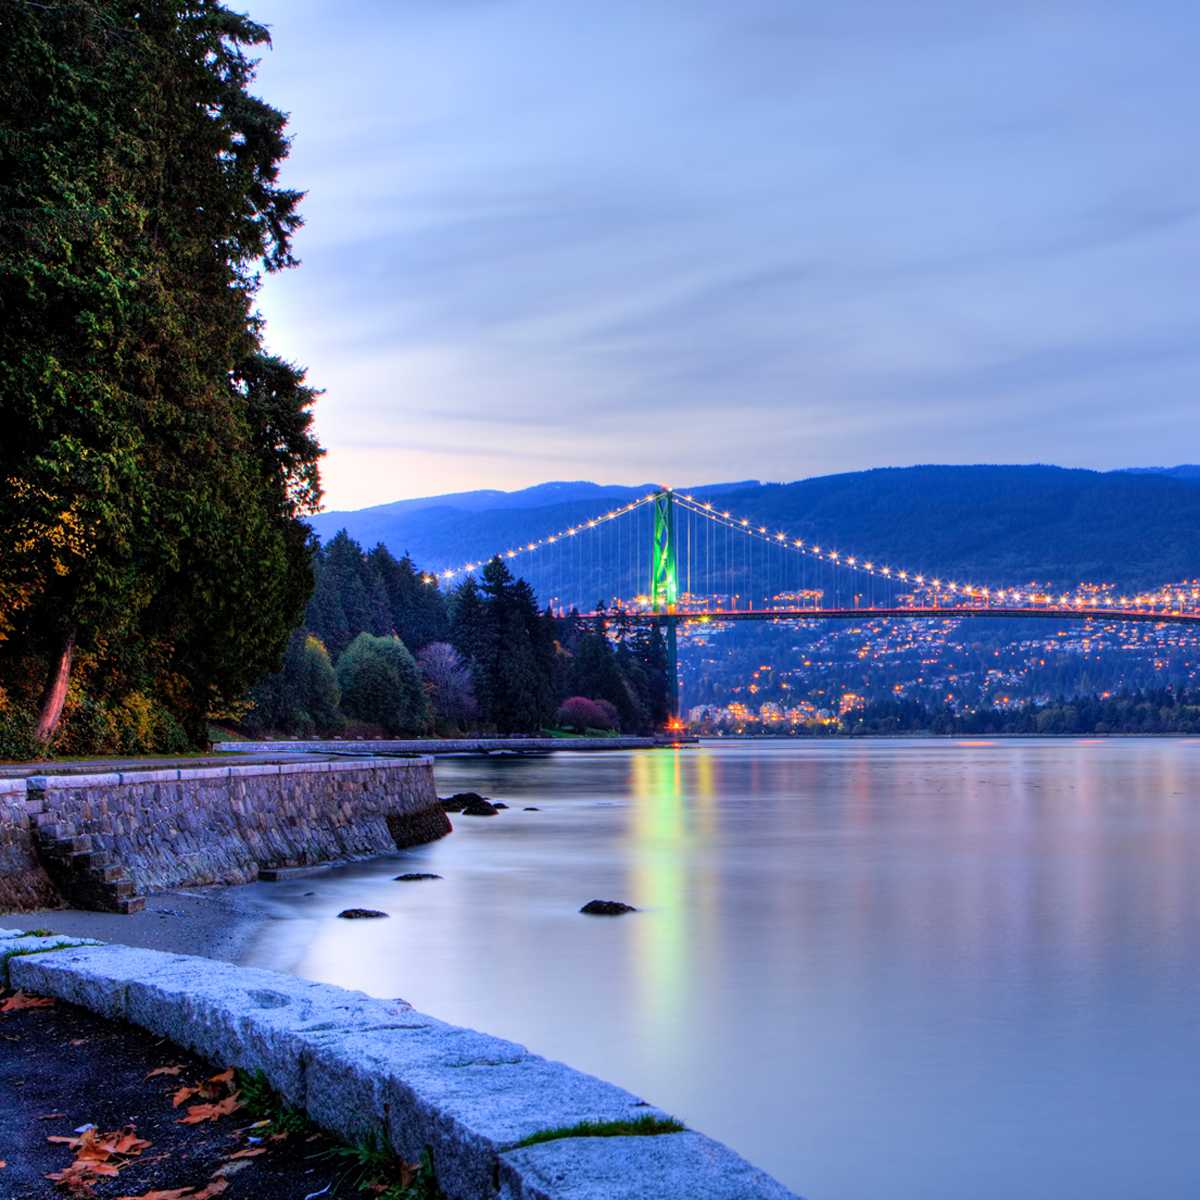 Tourism Vancouver / Clayton Perry